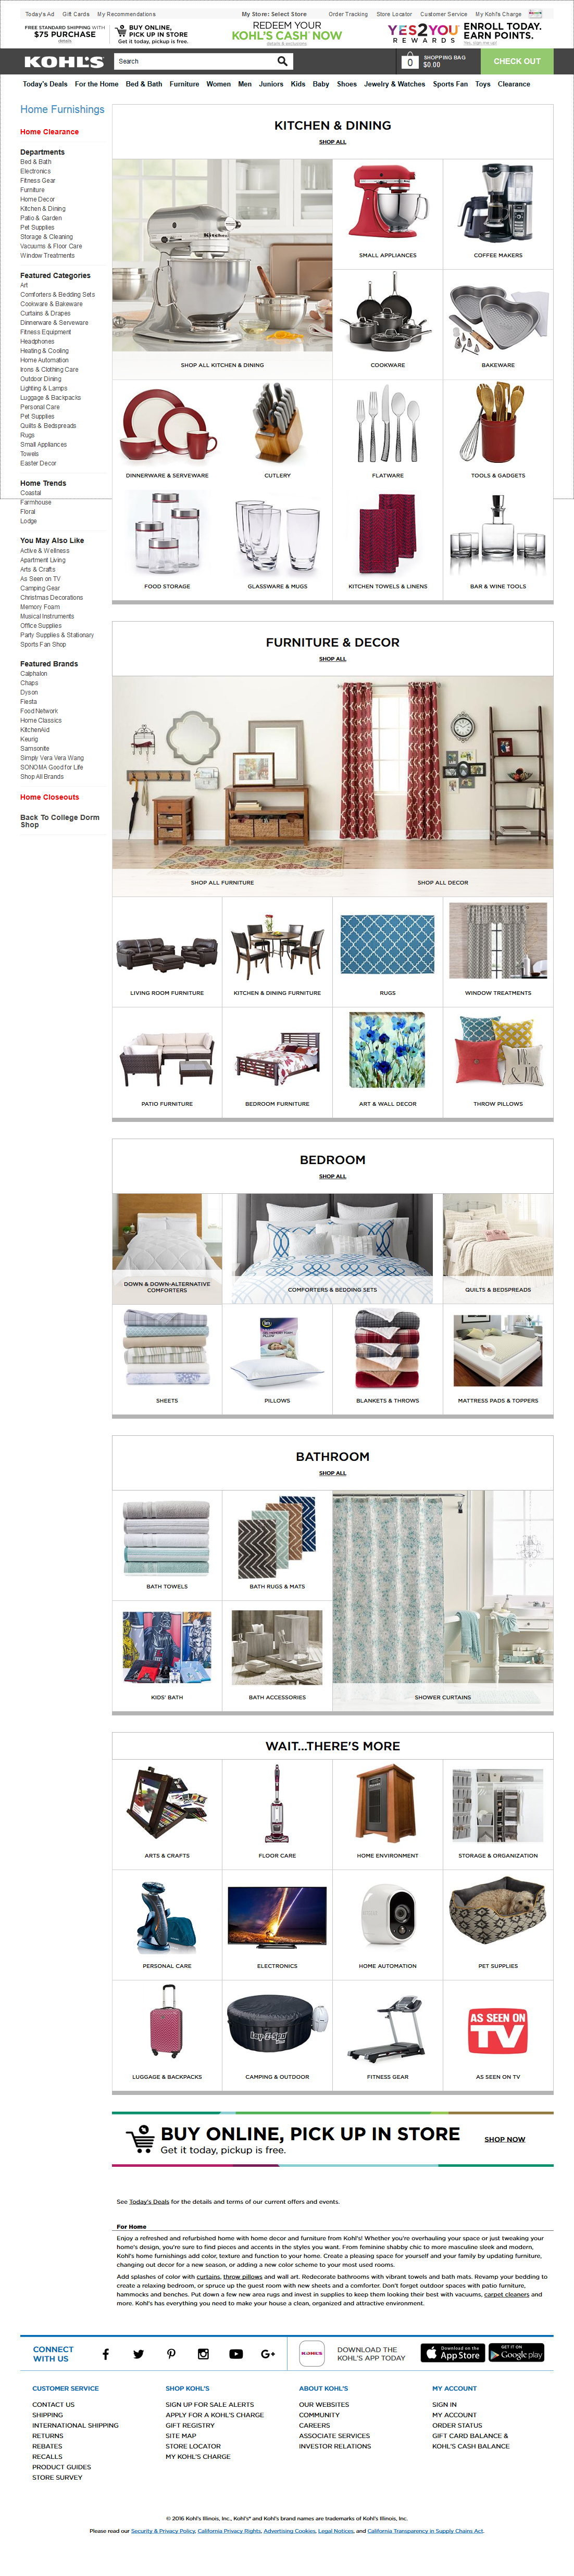 Kohls Bedroom Furniture Kohls Homepage Categories Usability Score 1280 Baymard